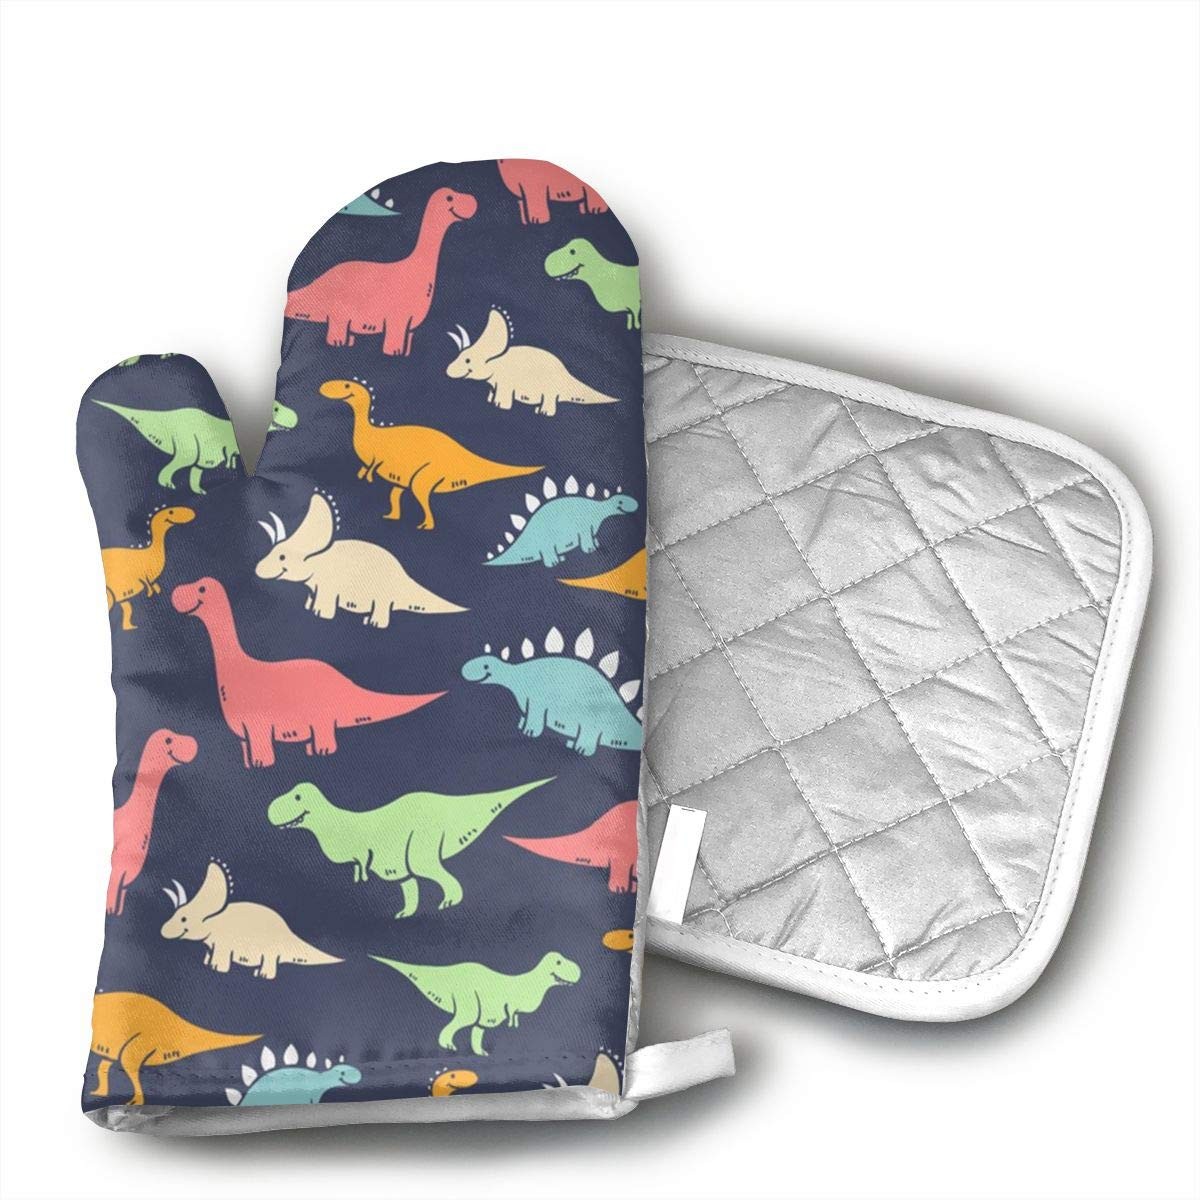 Wiqo9 Cartoon Dinosaur Oven Mitts and Pot Holders Kitchen Mitten Cooking Gloves,Cooking, Baking, BBQ.